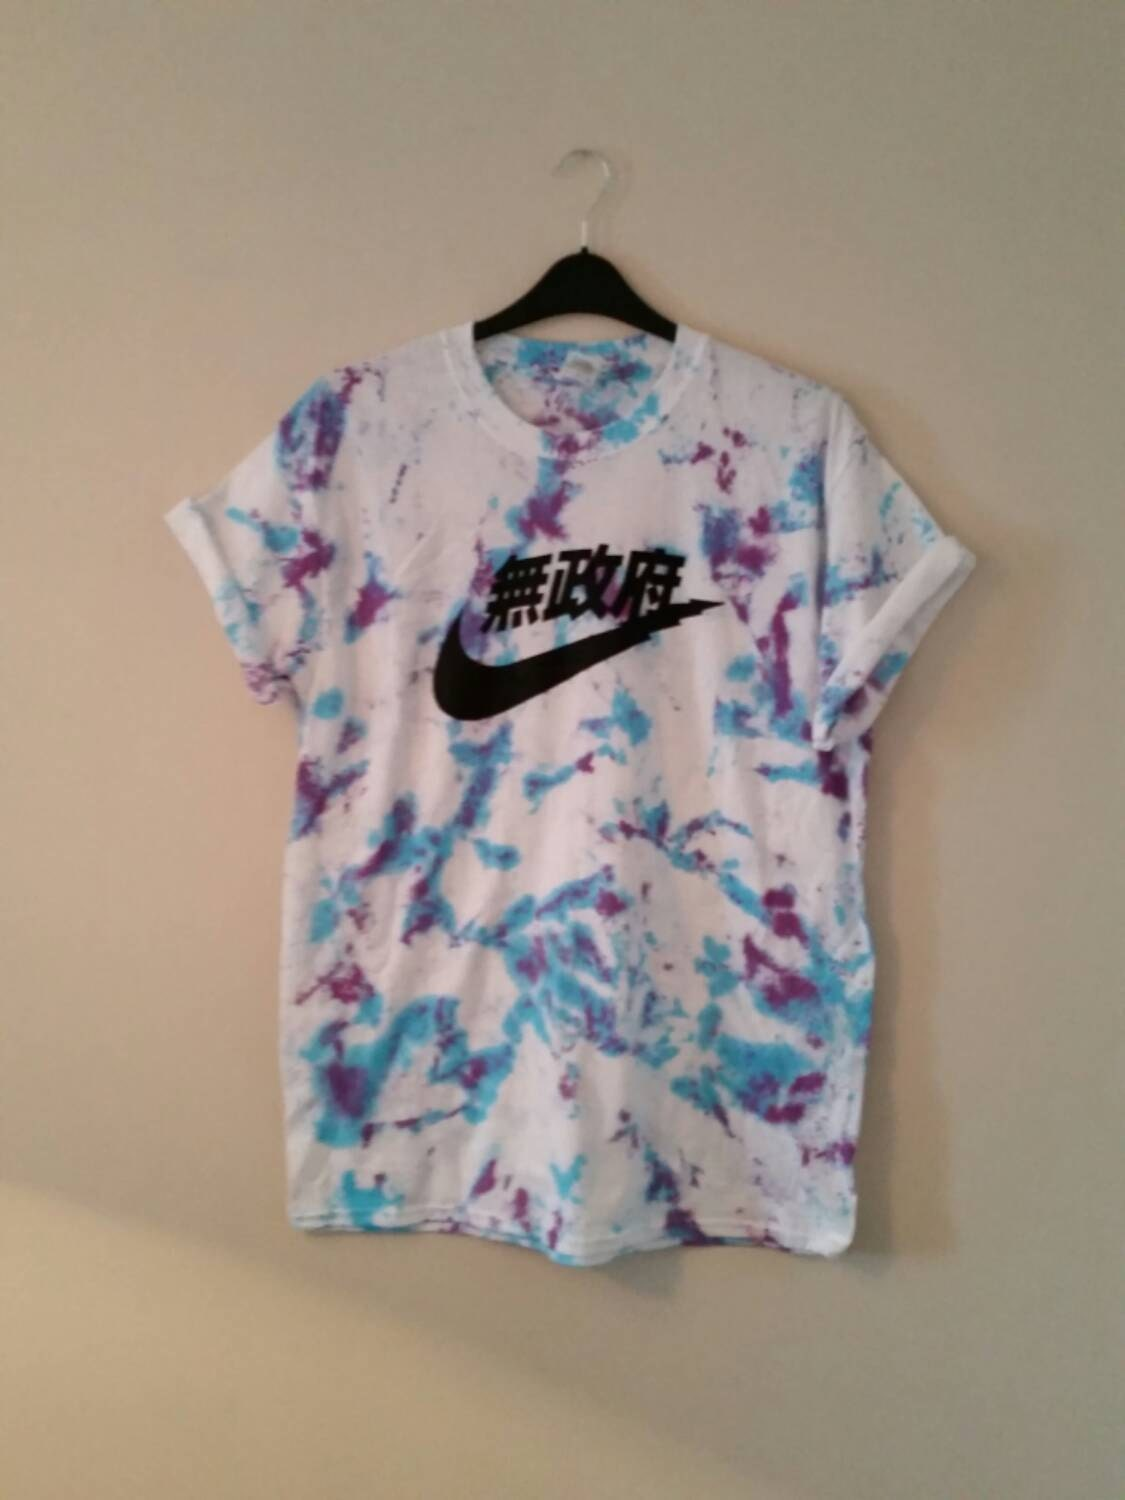 Unisex customised acid wash tie dye nike t shirt sz medium for How to wash tie dye shirt after dying